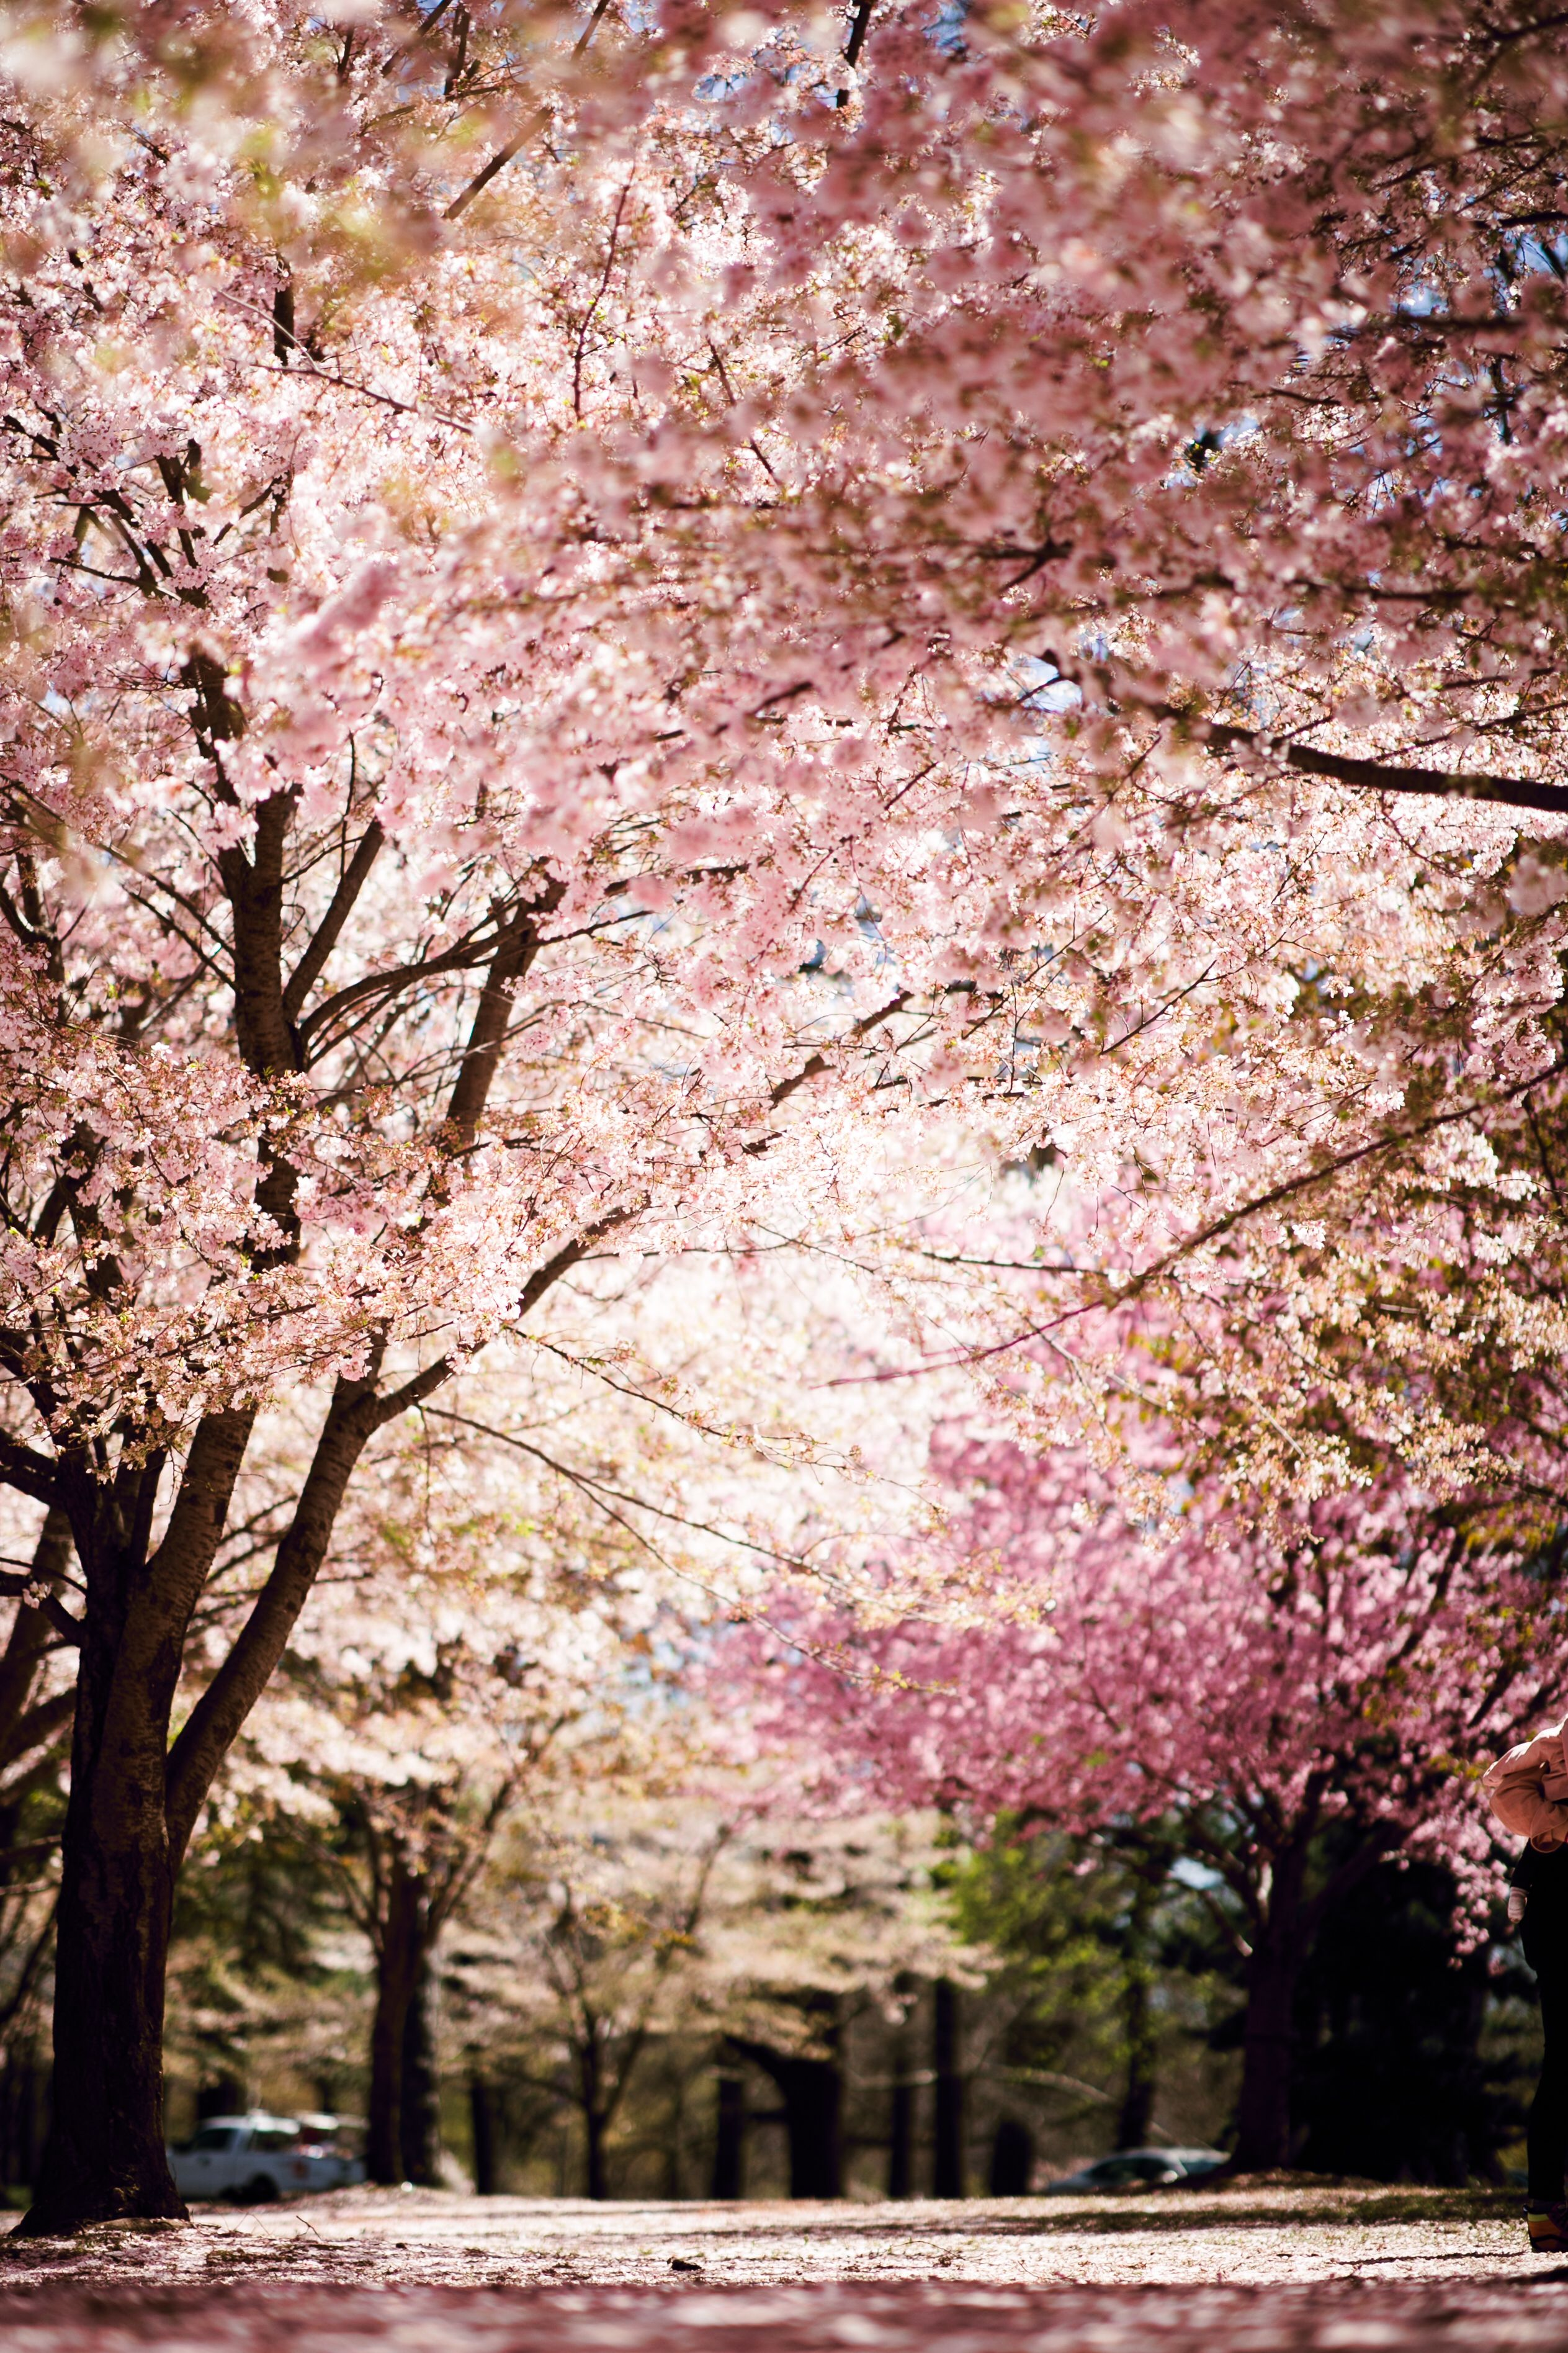 Pin by Sonia Montoya on Cherry Blossoms | Summer wallpaper ...